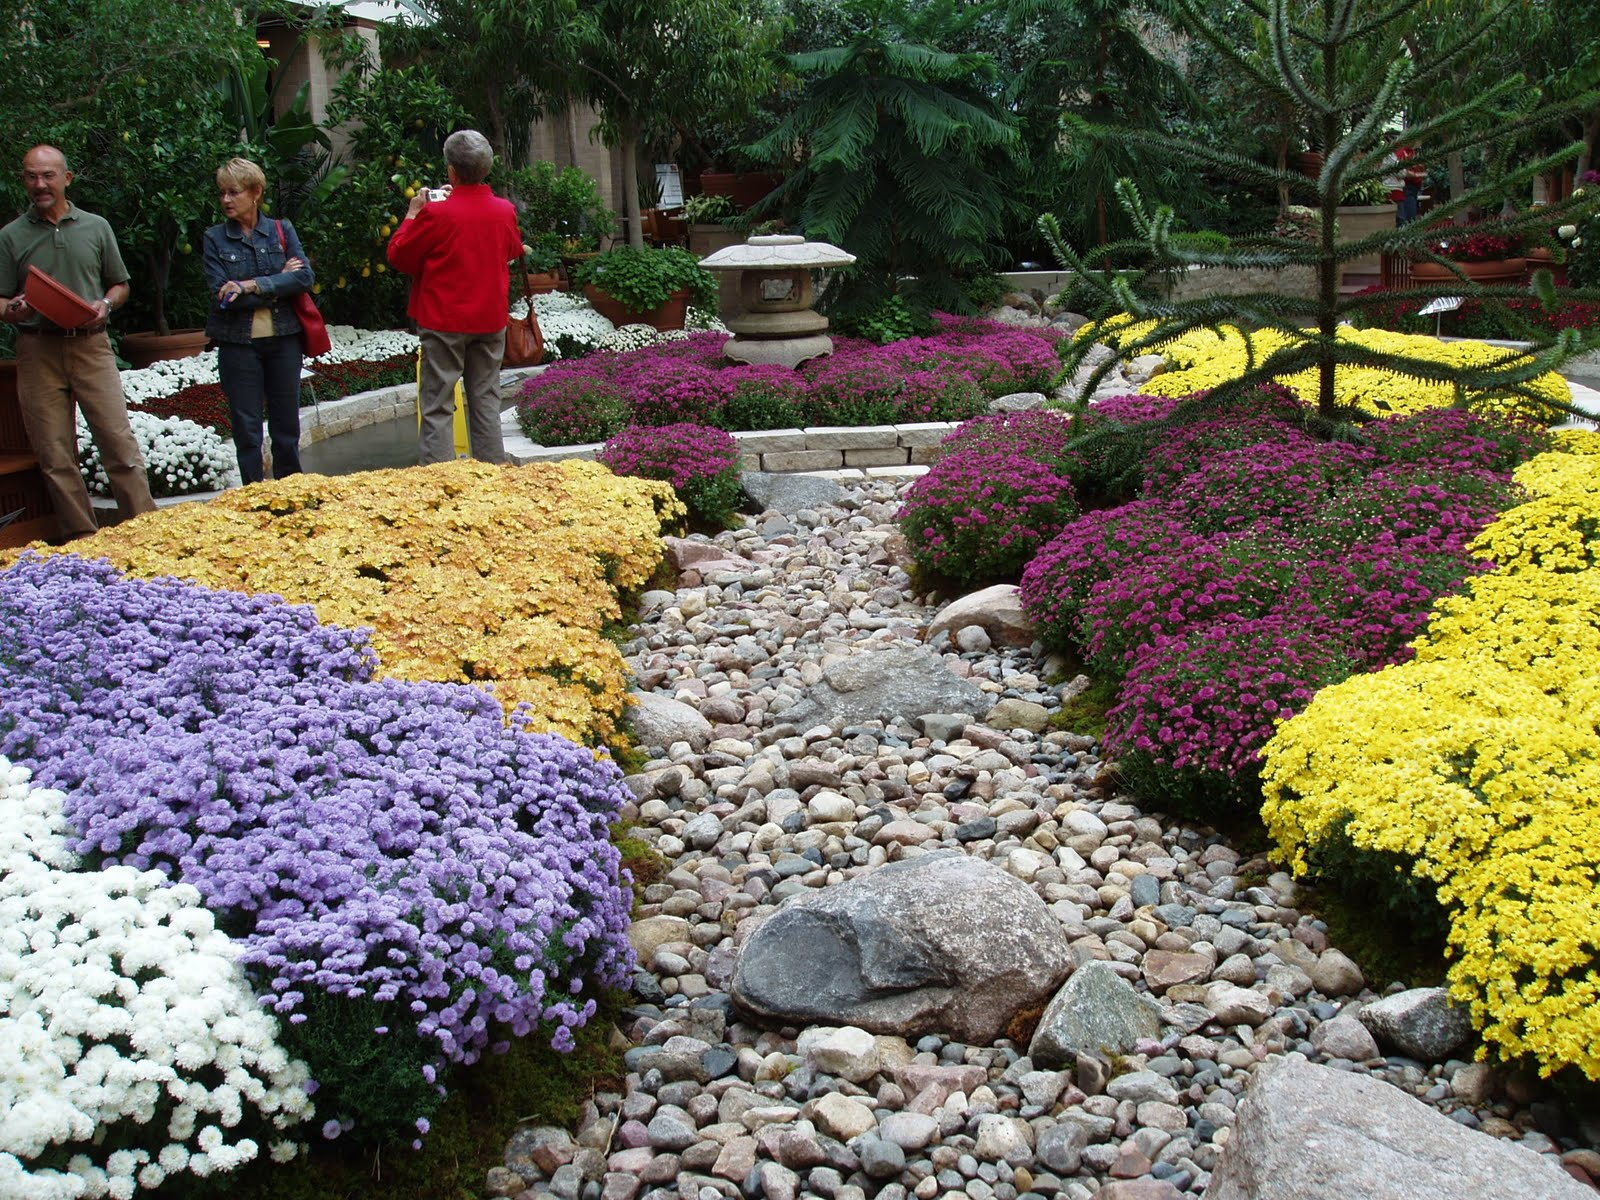 lauritzen gardens fall - photo #17